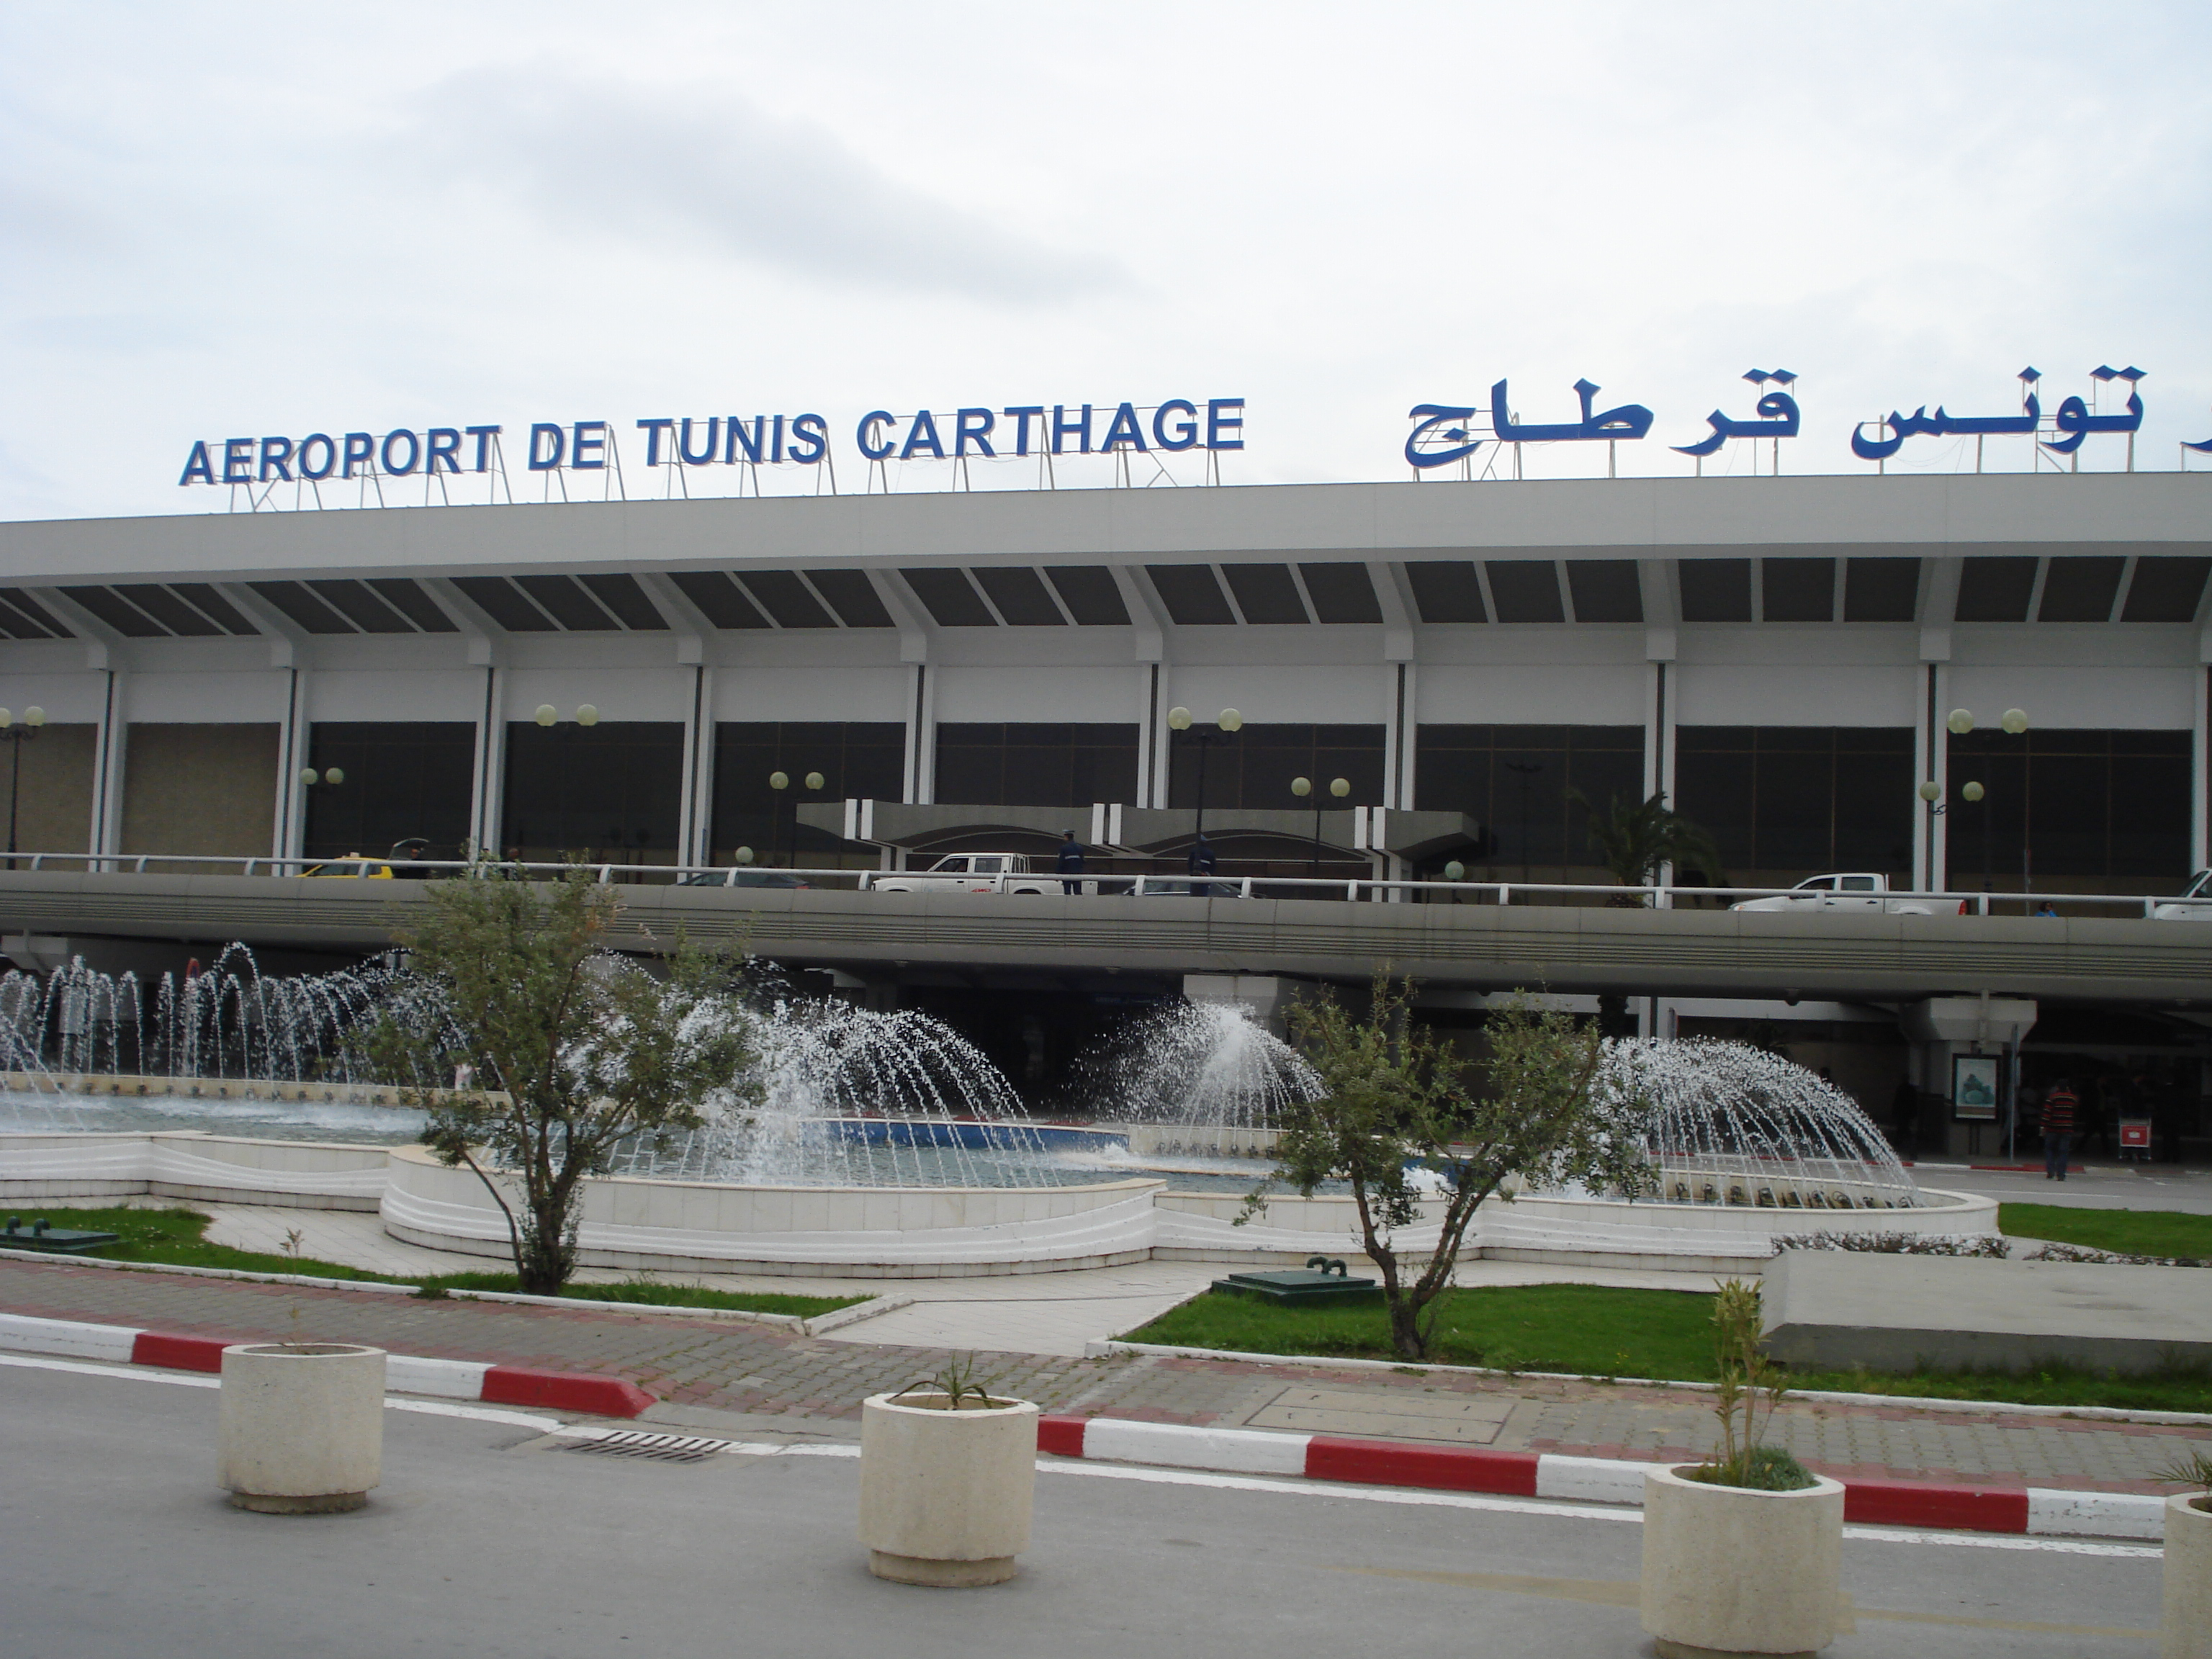 http://upload.wikimedia.org/wikipedia/commons/e/ef/A%C3%A9roport_Tunis.jpg